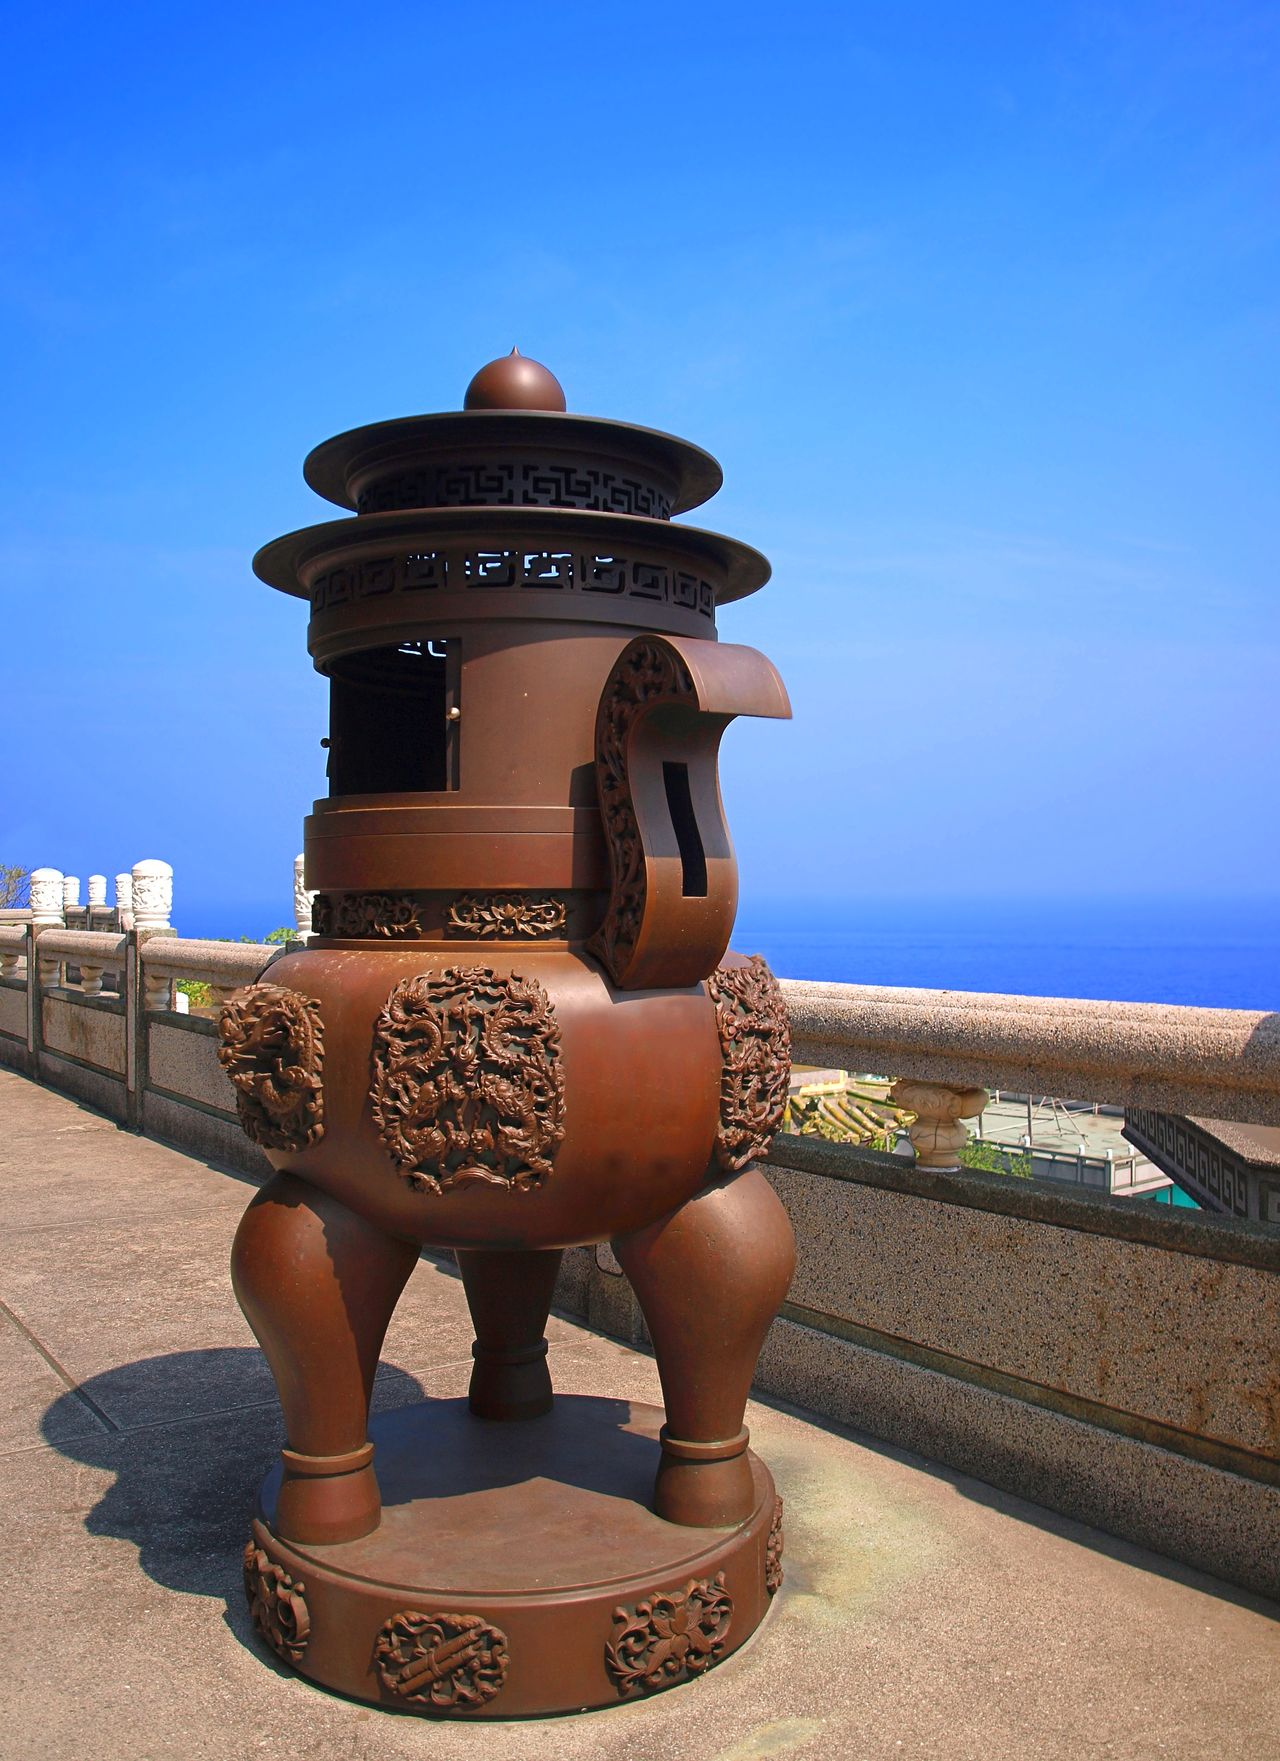 A massive bronze incense burner on a terrace outside a Chinese temple Bronze Sculpture Bronze Vessel Buddhist Temple Cauldron Incense Burner Ocean View Sky Summer Taiwan Temple Terrace